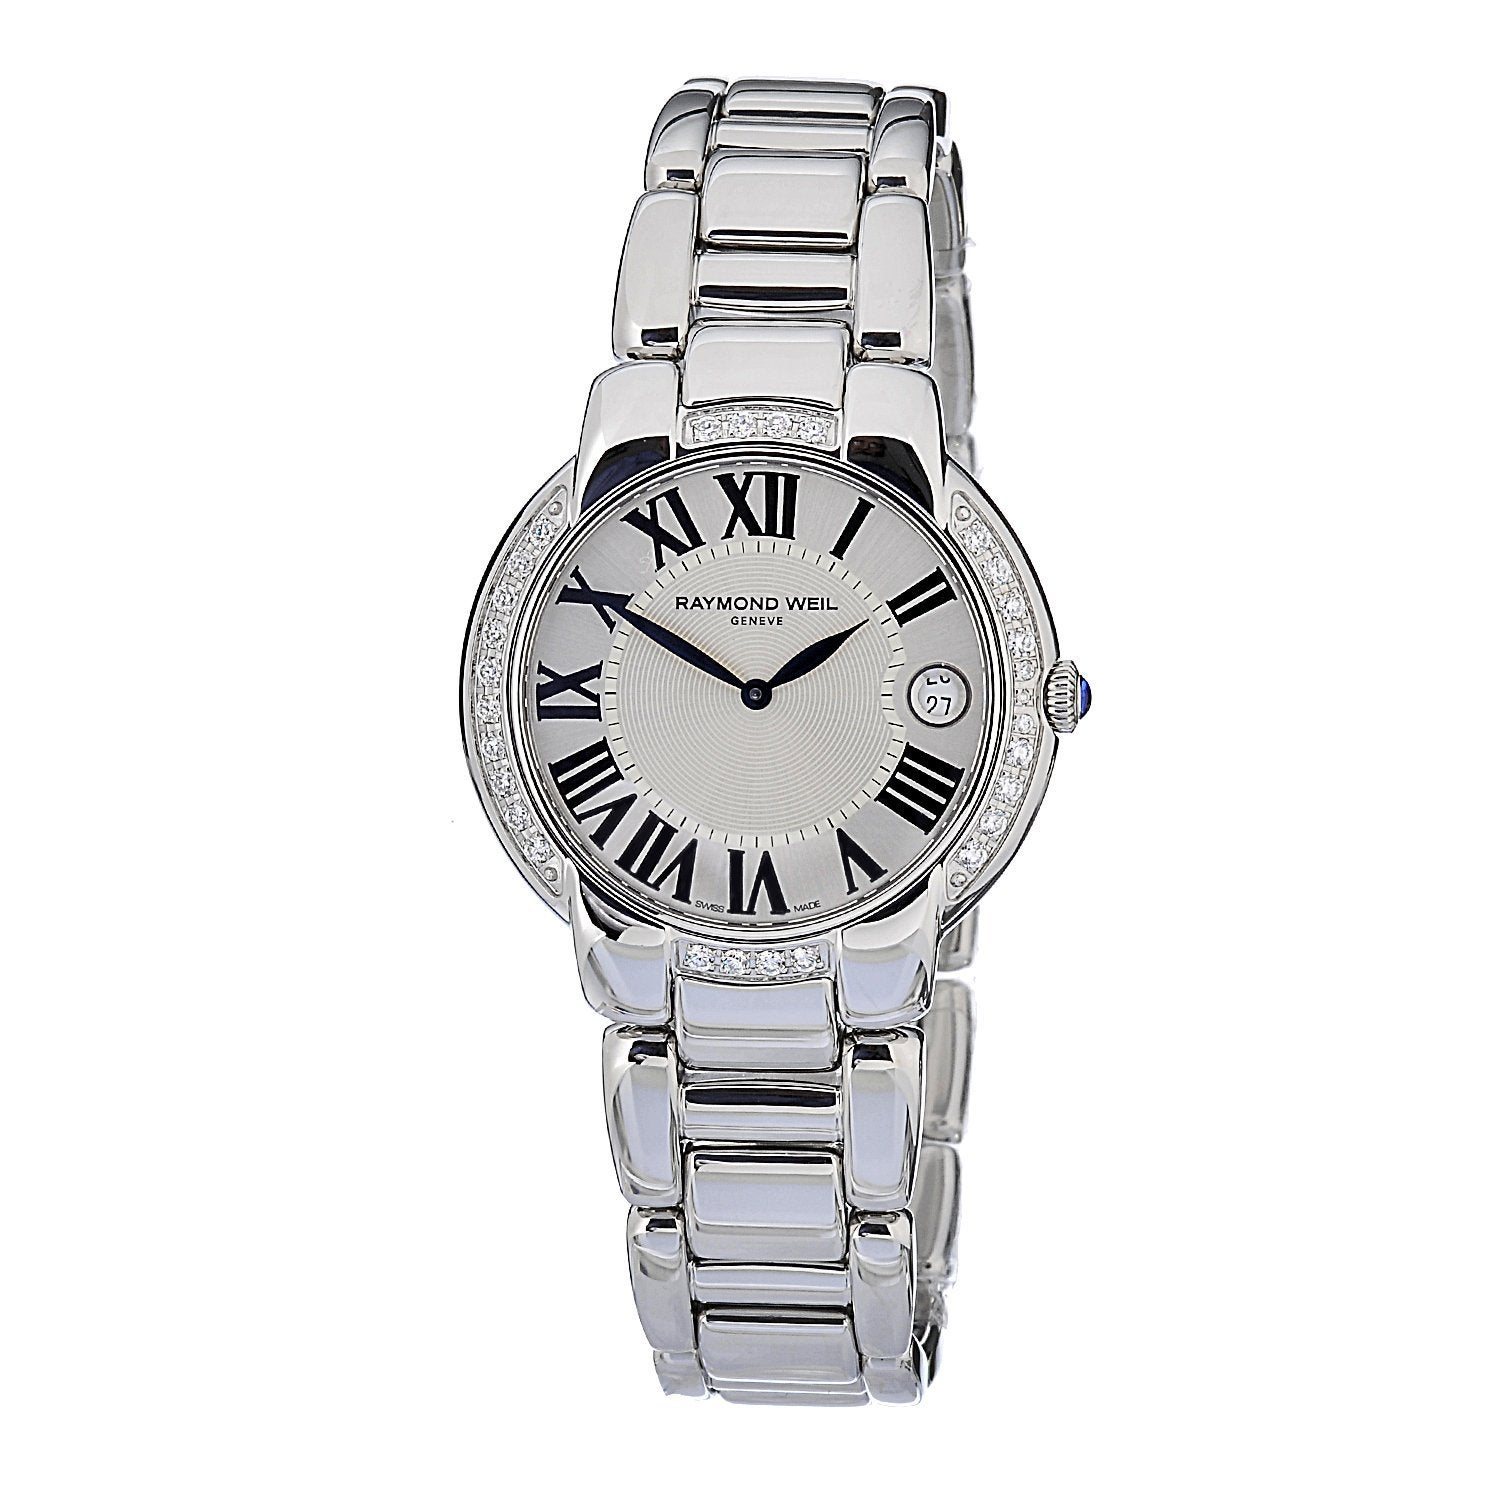 Raymond weil women 39 s watches overstock shopping the best prices online for Raymond weil watch